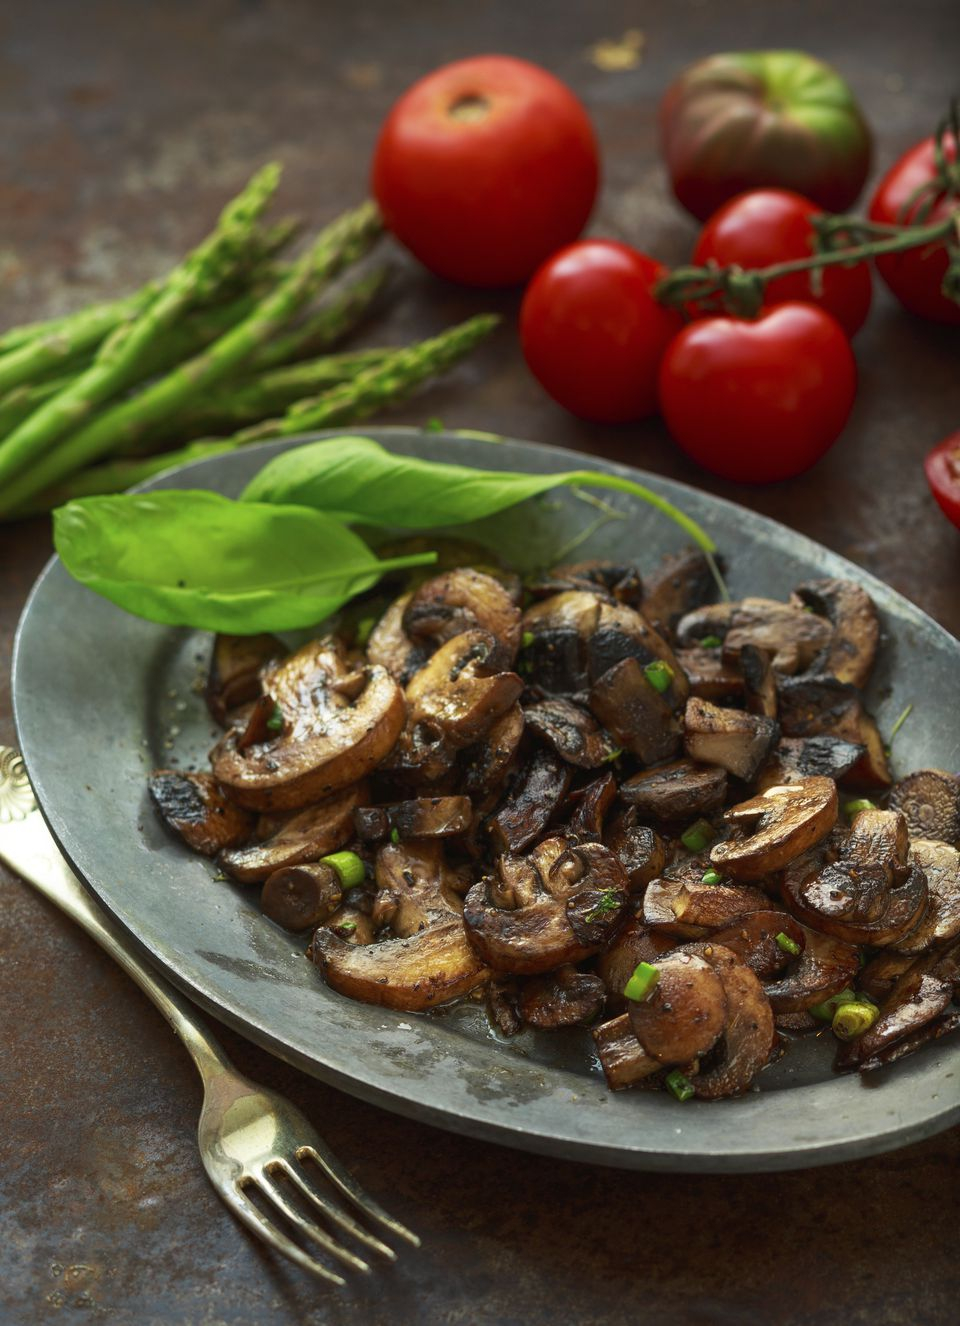 Mushroom Saute as appetizer or atop of the main course.